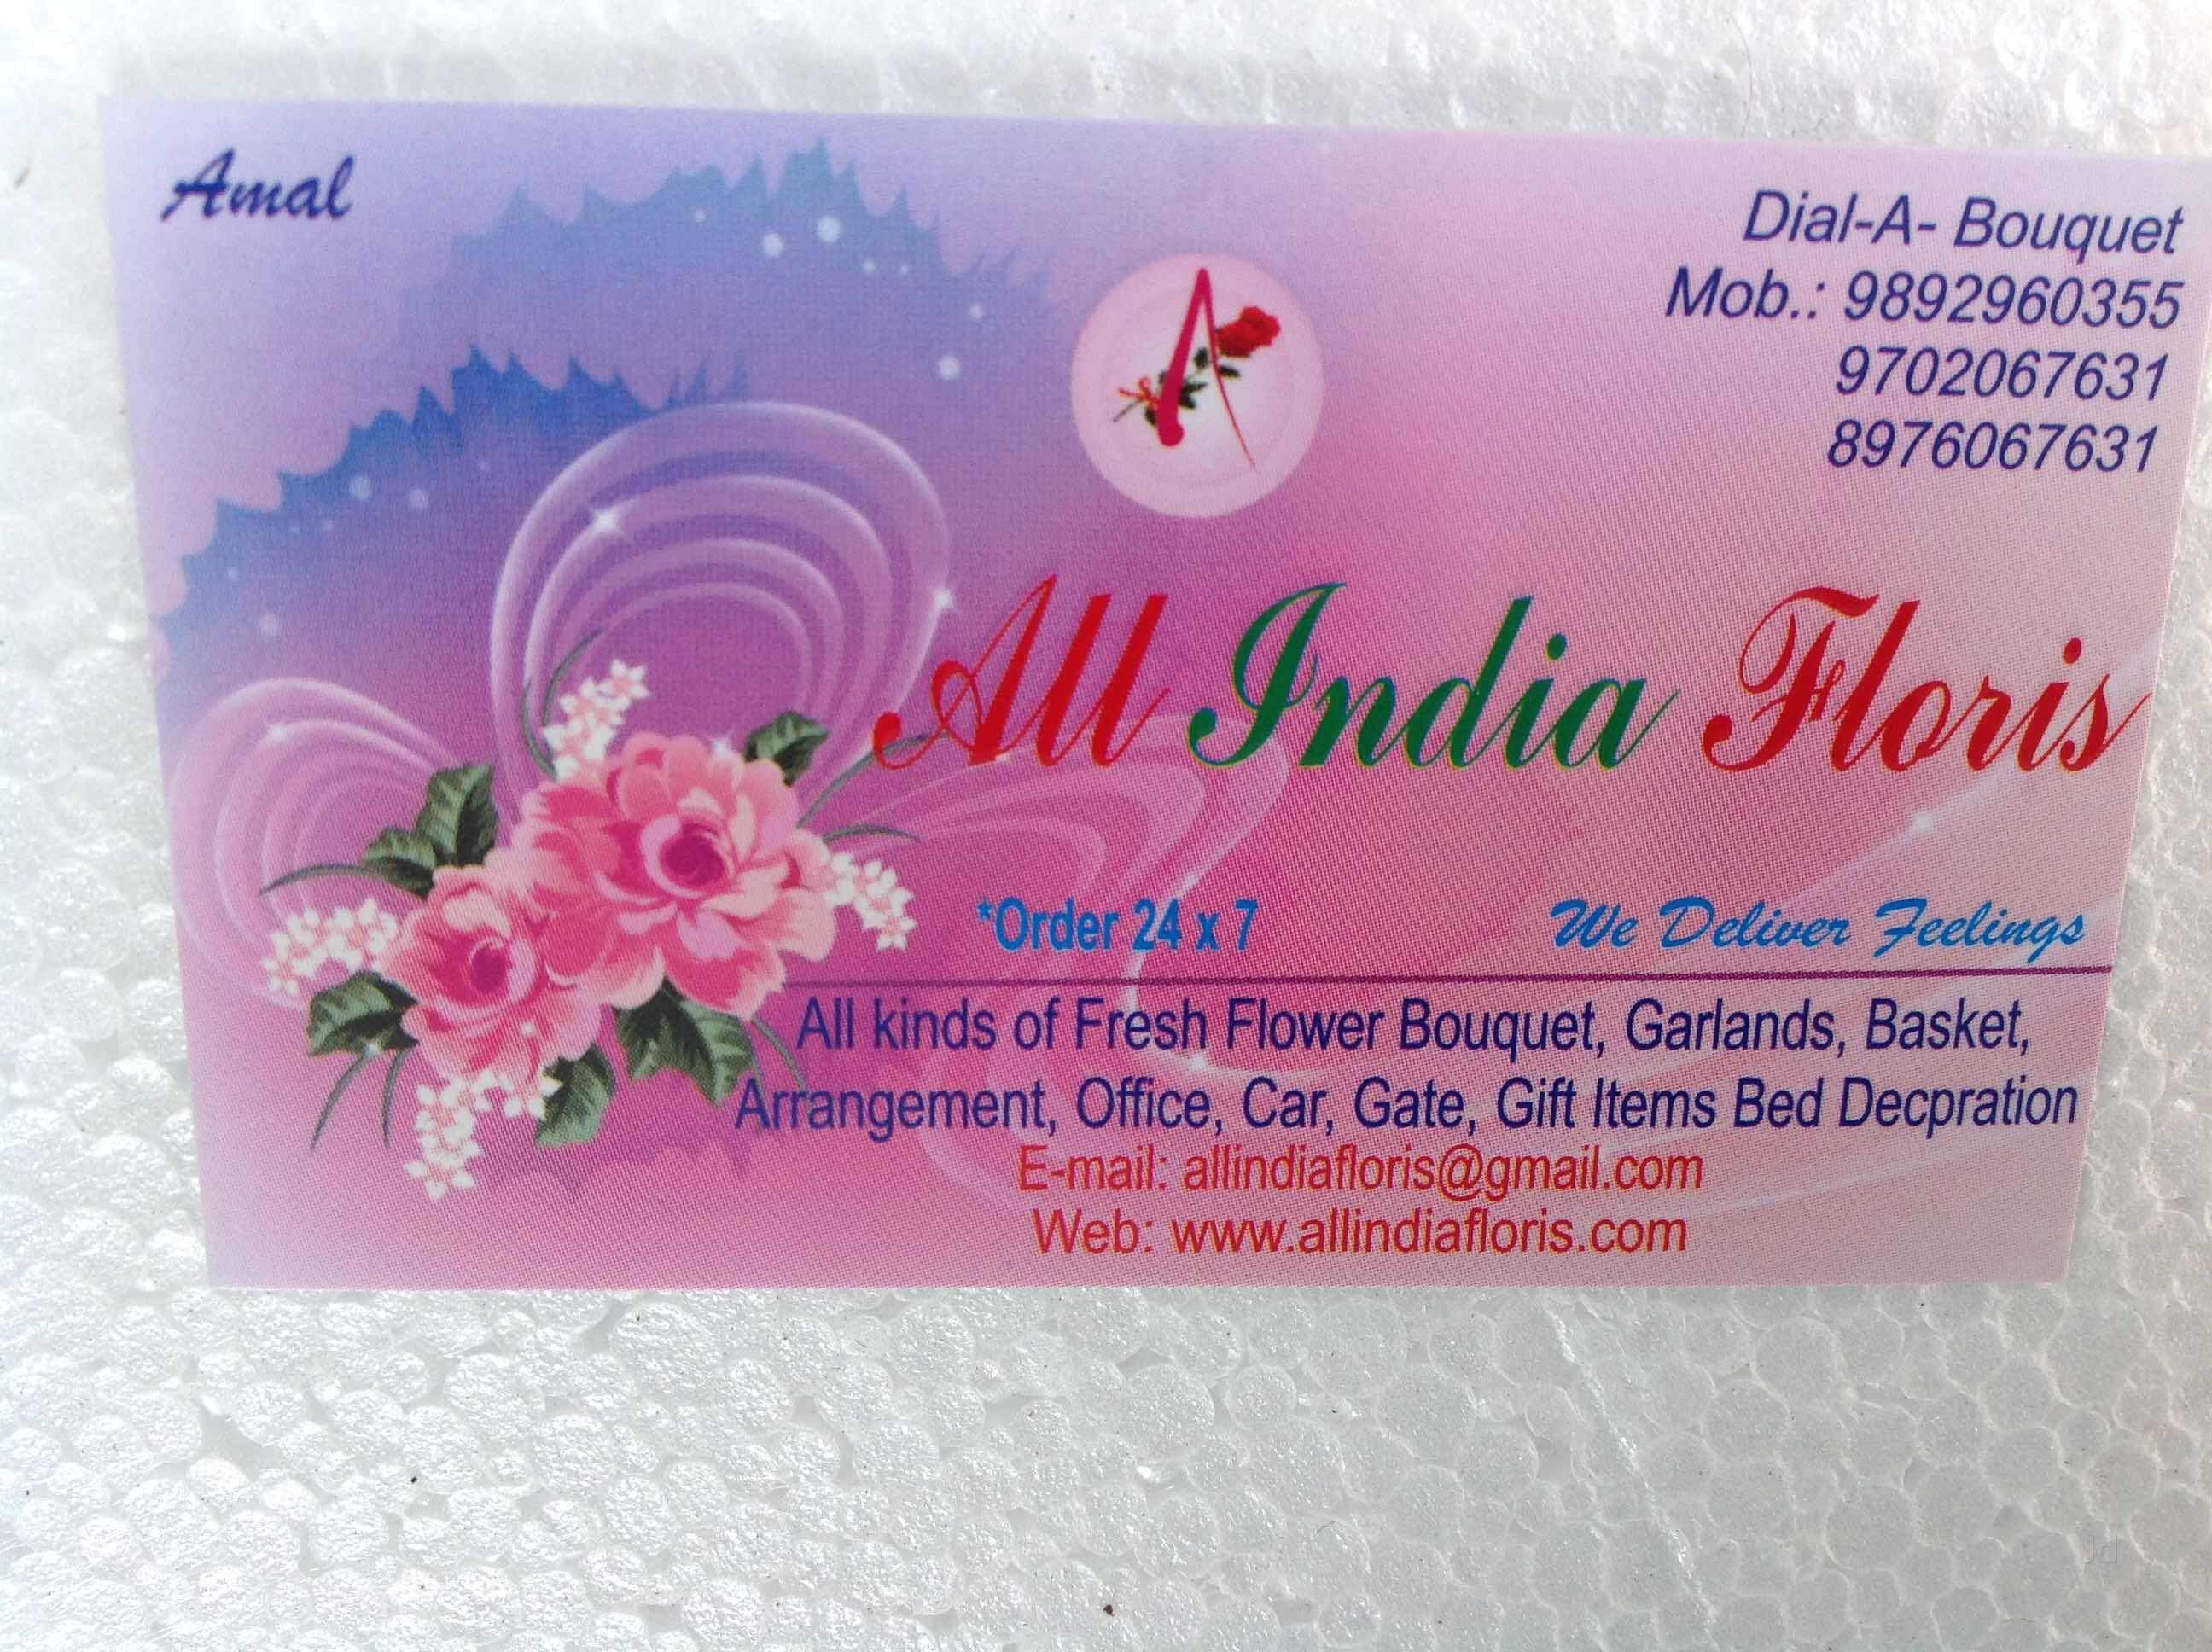 All India Floris Kandivali East Florists Home Delivery in Mumbai Justdial